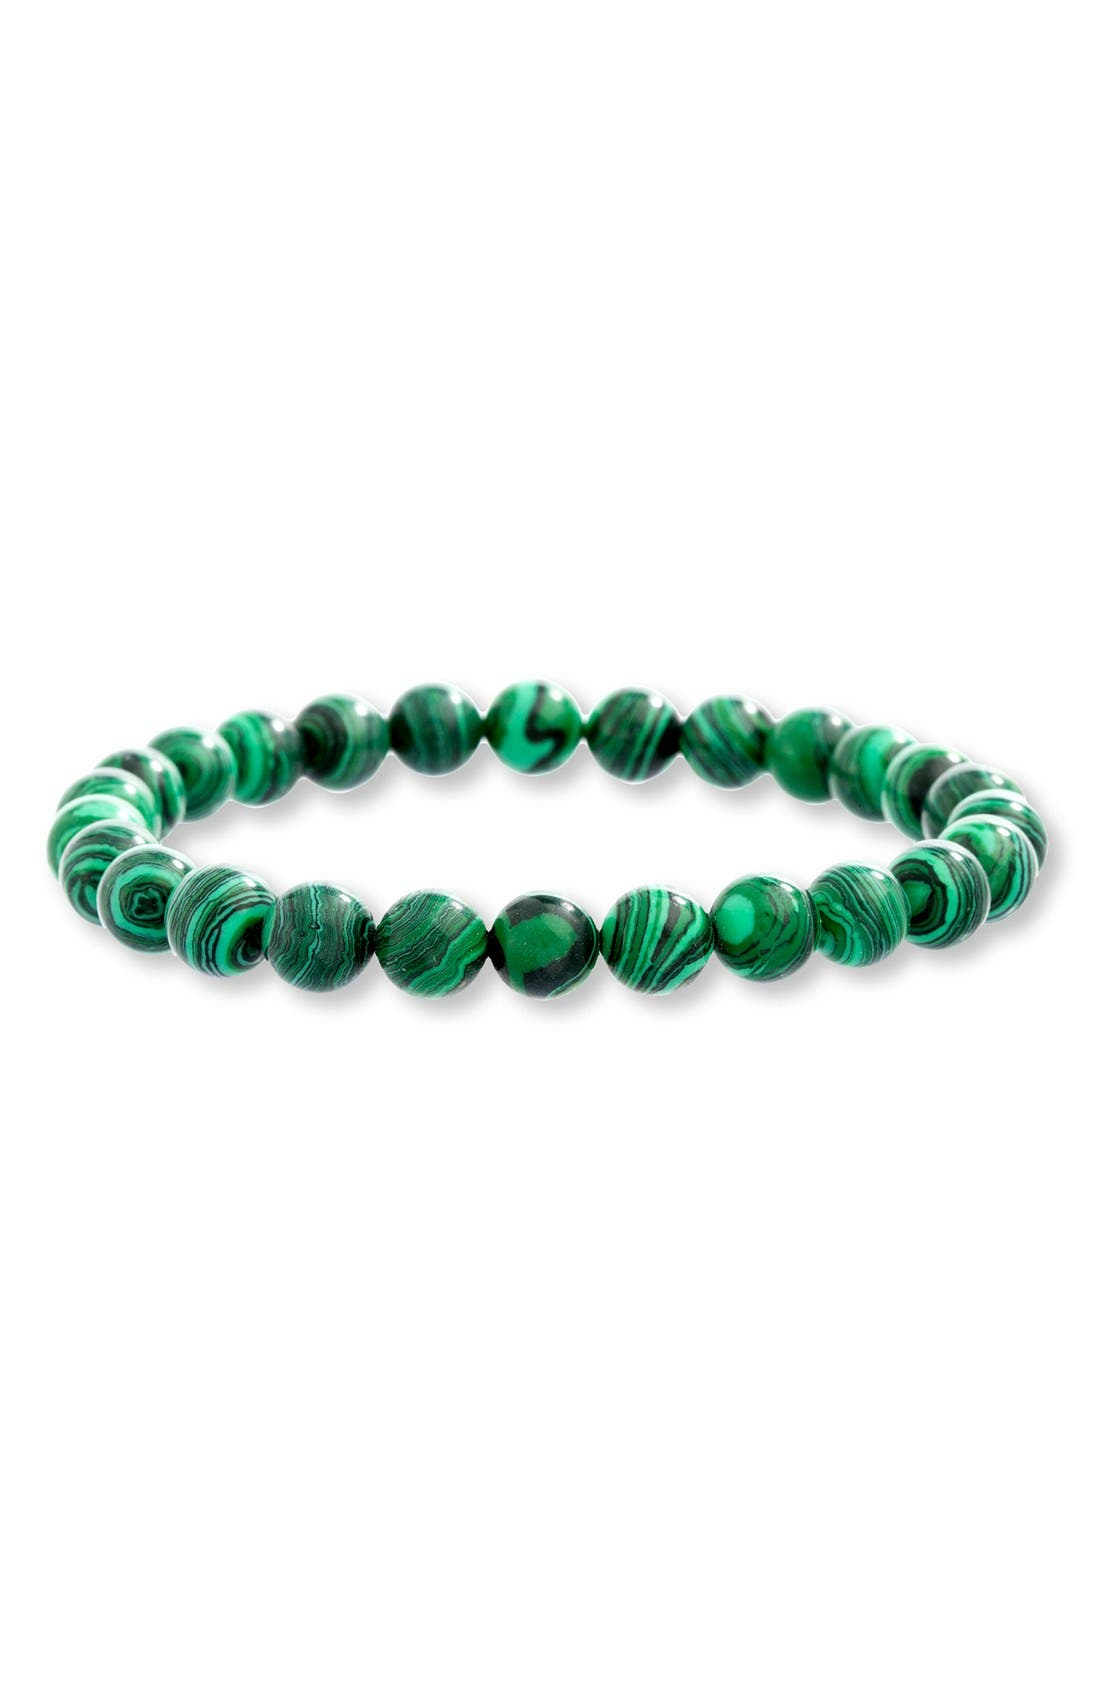 Malachite Bead Bracelet,                             Main thumbnail 1, color,                             300